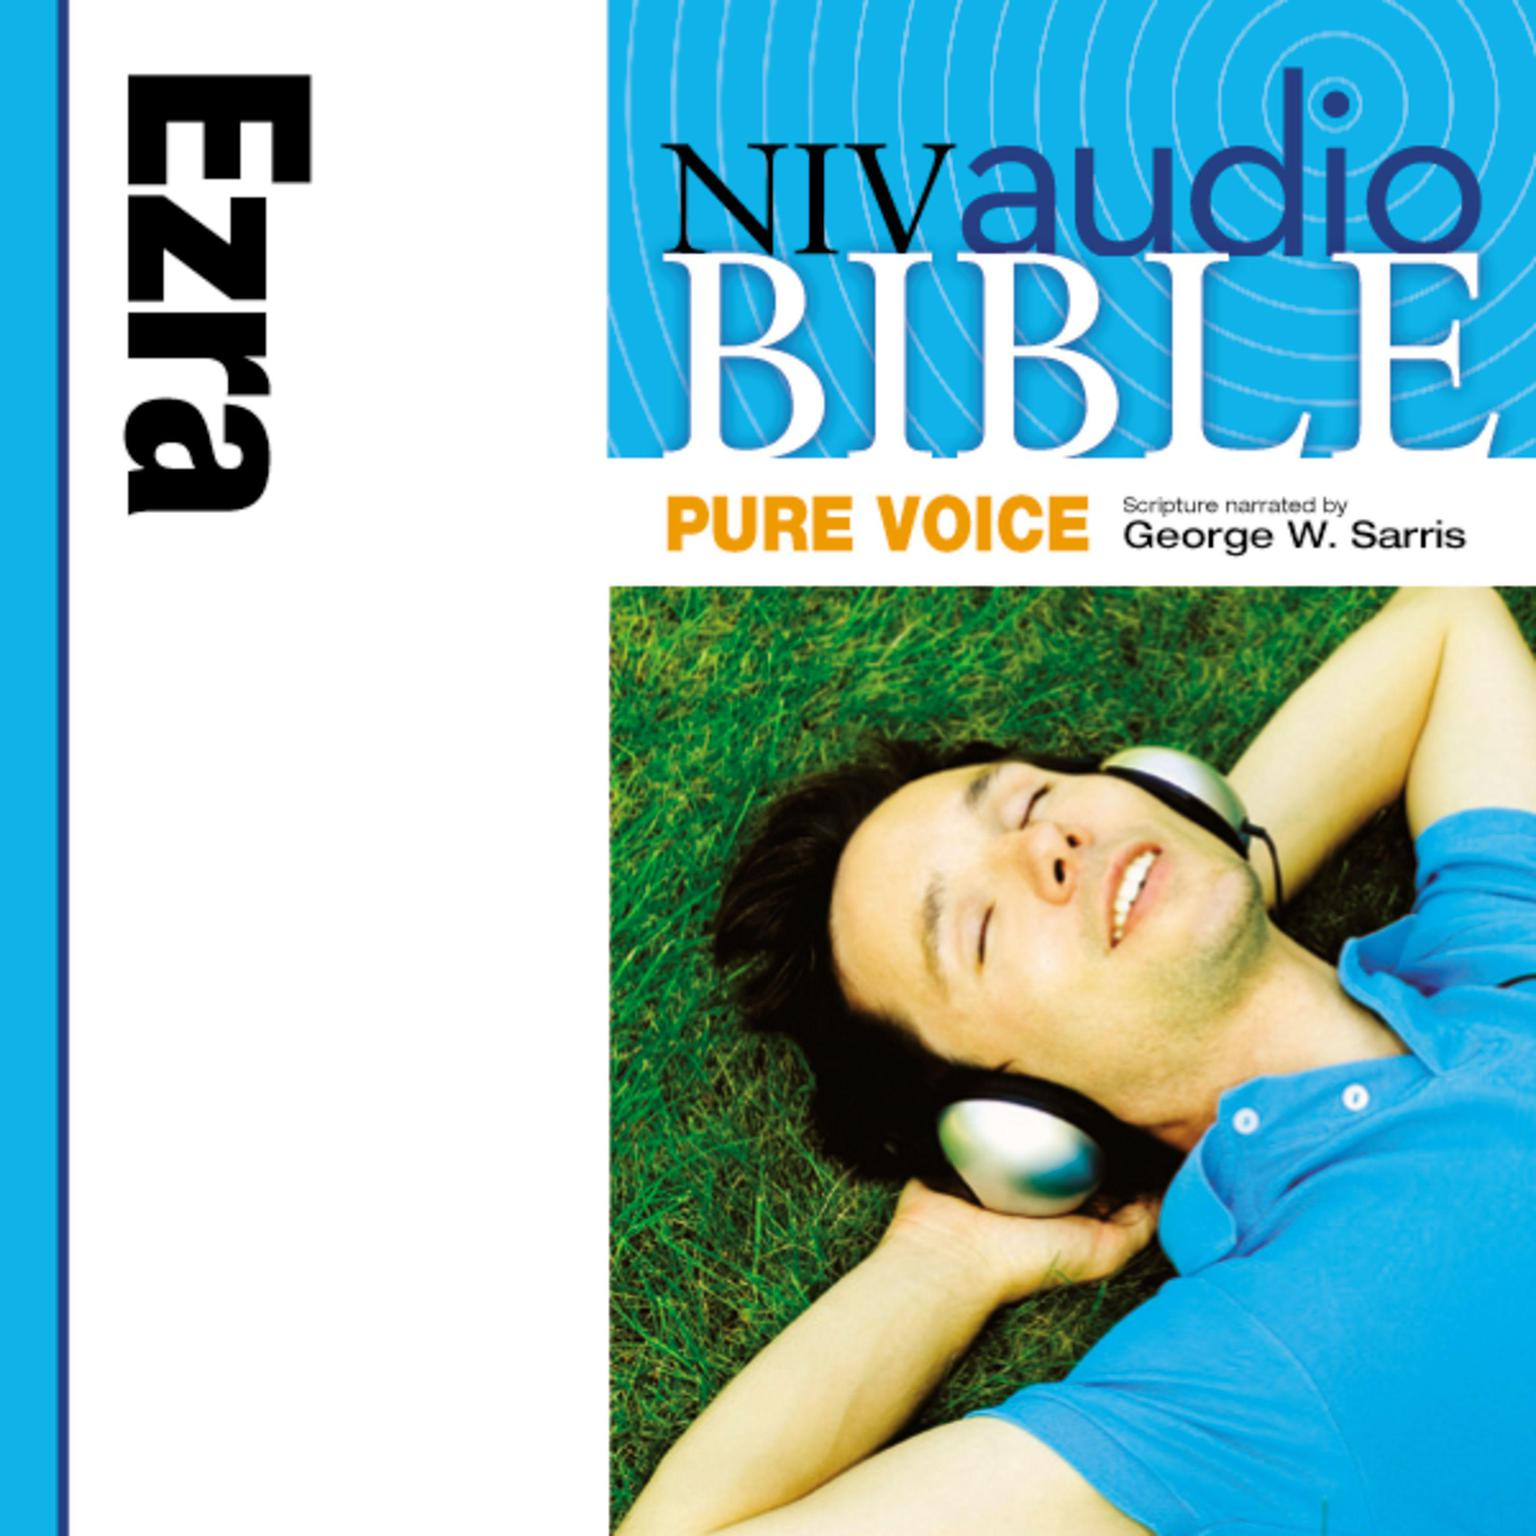 Printable NIV, Audio Bible, Pure Voice: Ezra, Audio Download (Narrated by George W. Sarris): Ezra Audiobook Cover Art